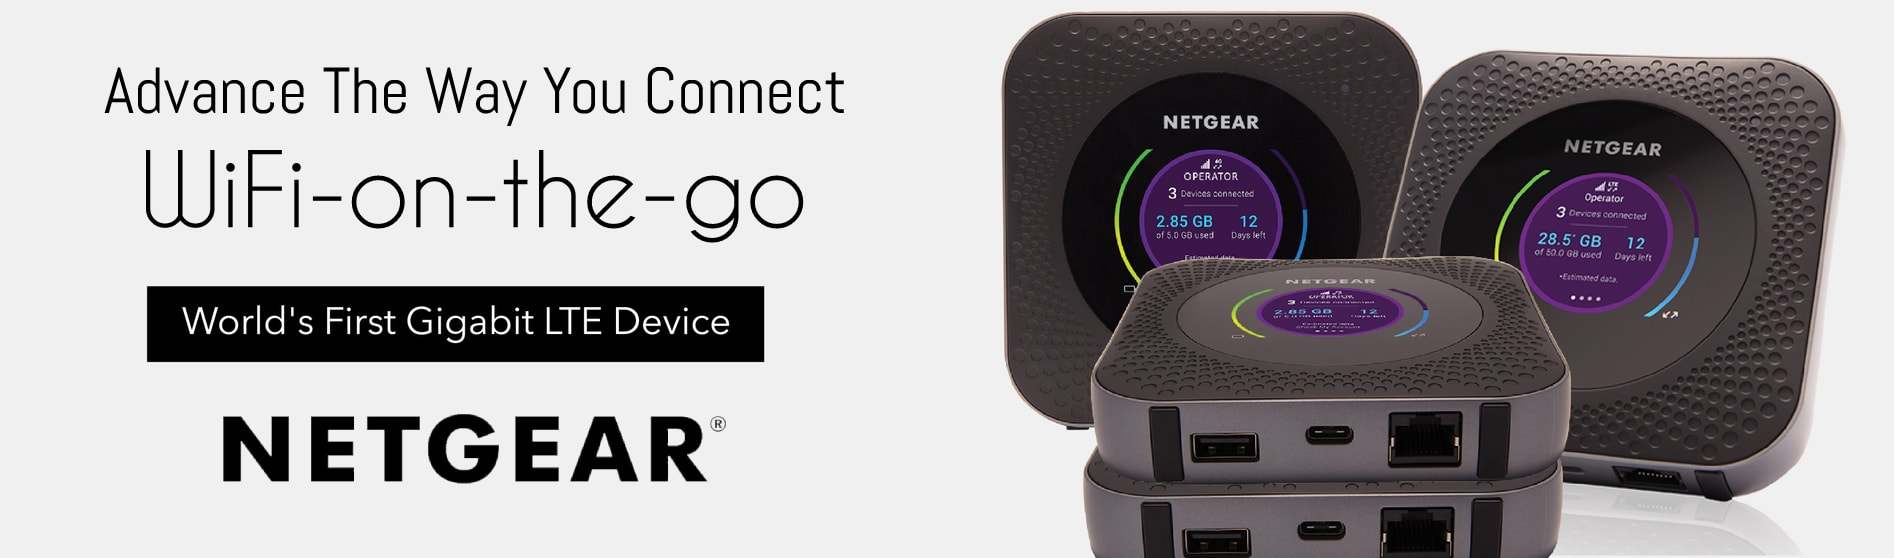 Netgear R6120-100INS AC1200 Dual-Band Wi-Fi Router | Buy